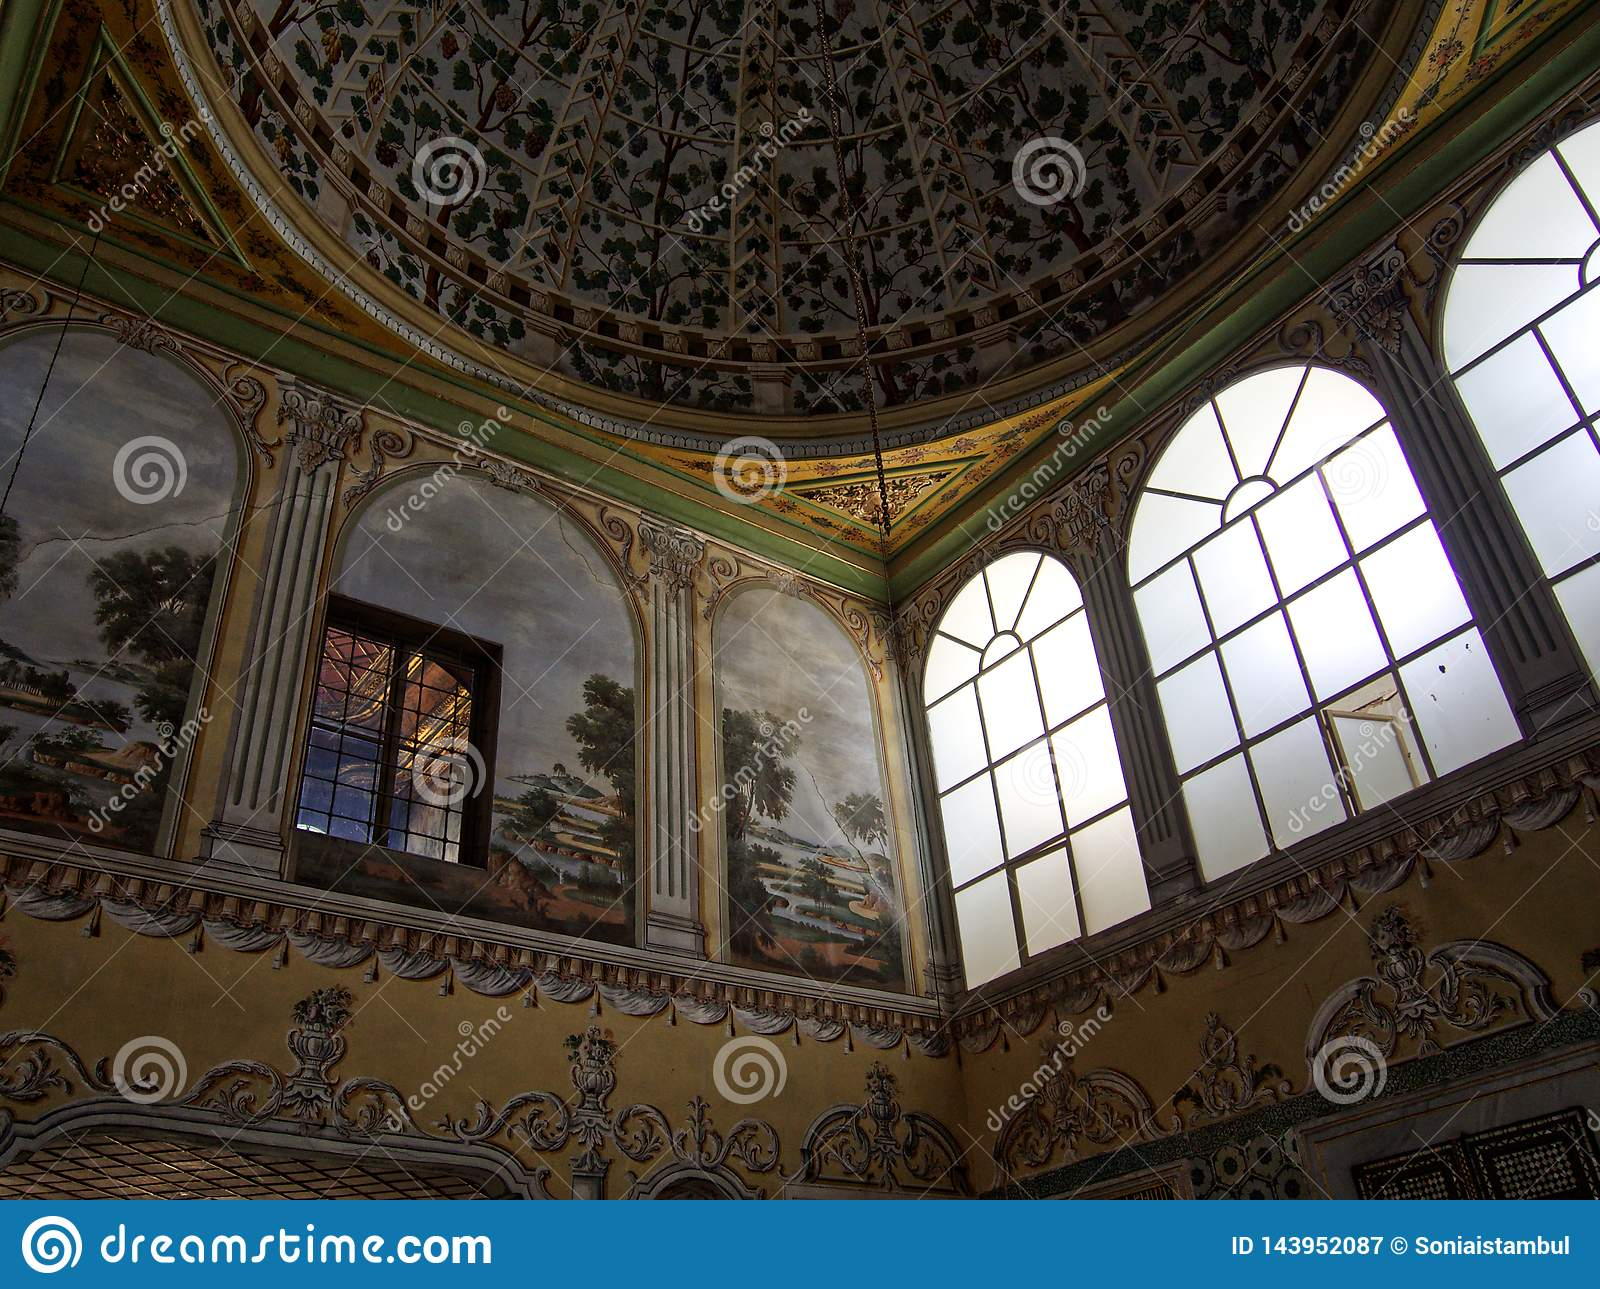 Topkapi palace detail ceiling and windows